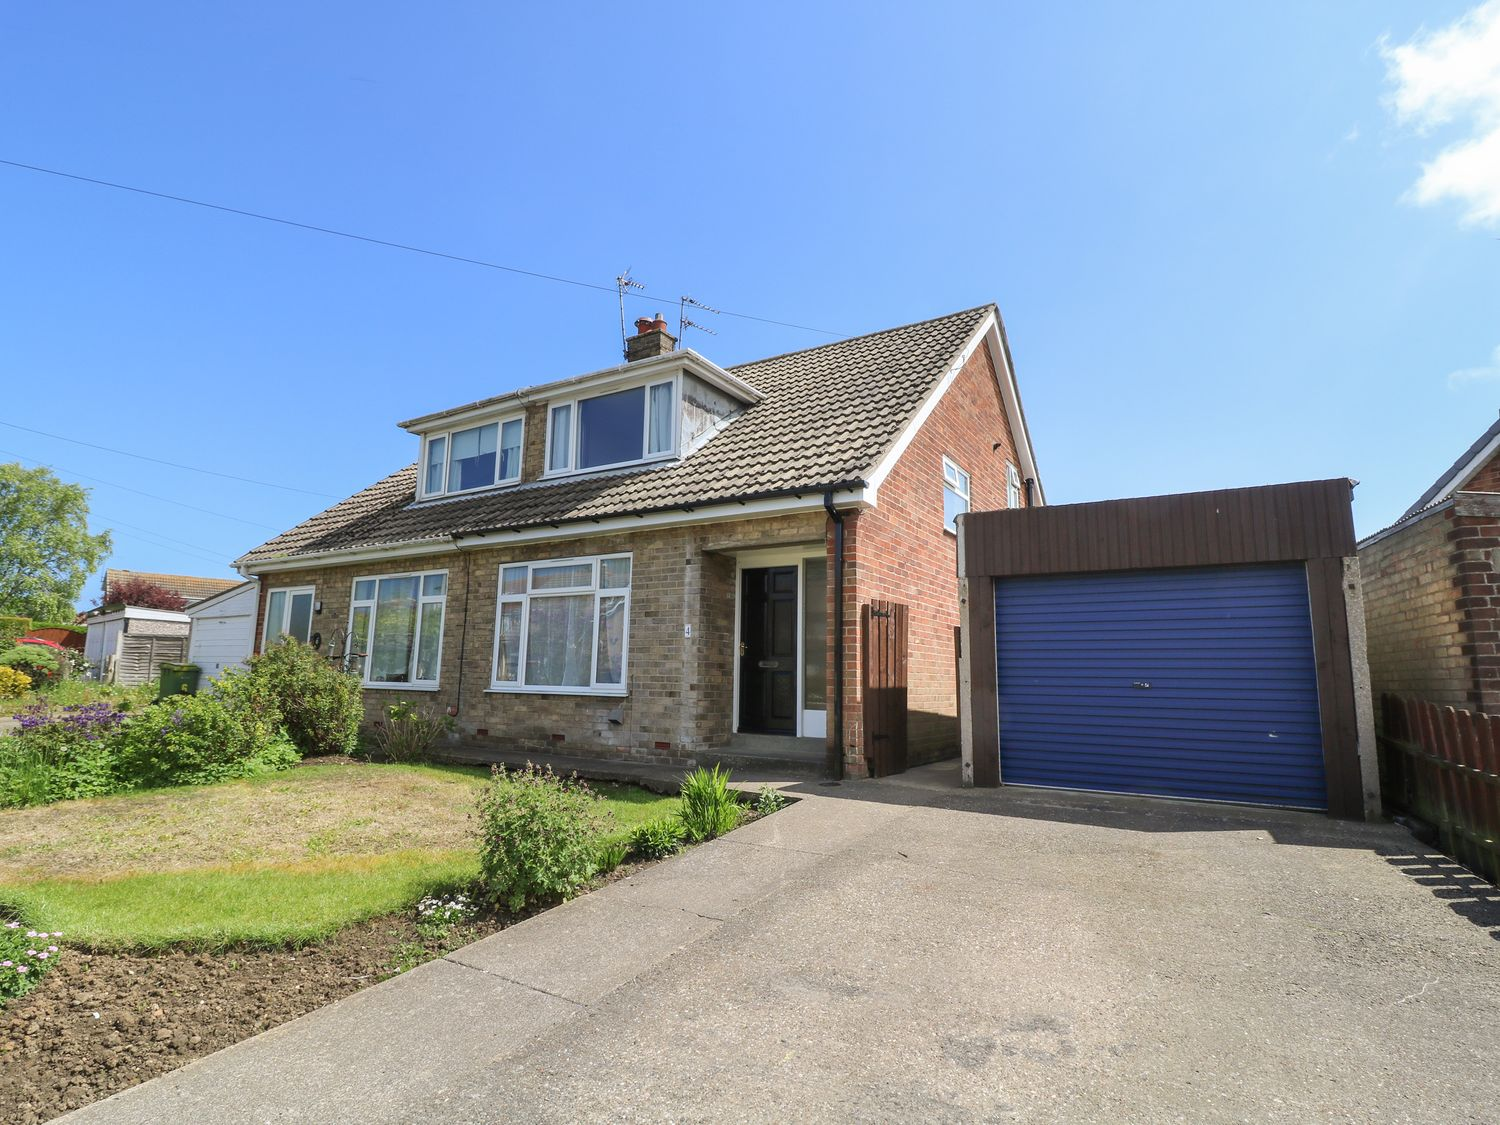 4 Ranby Drive - Whitby & North Yorkshire - 1064737 - photo 1